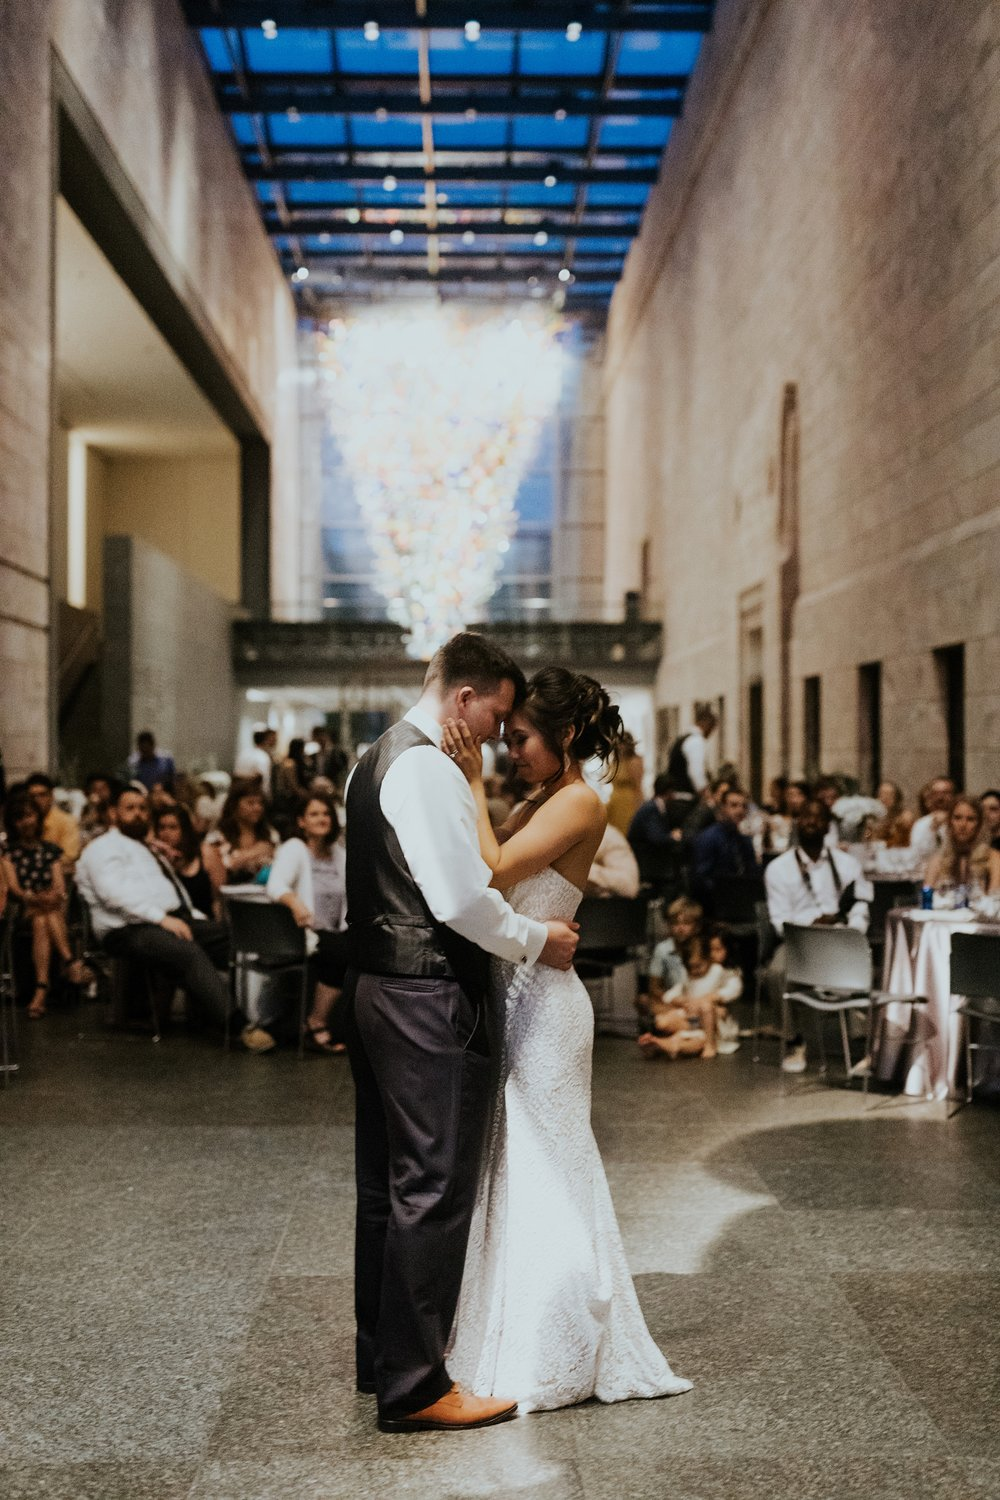 Whimsical Joslyn Art Museum Wedding by Trin Jensen - Omaha Nebraska Wedding Photographer_0040.jpg